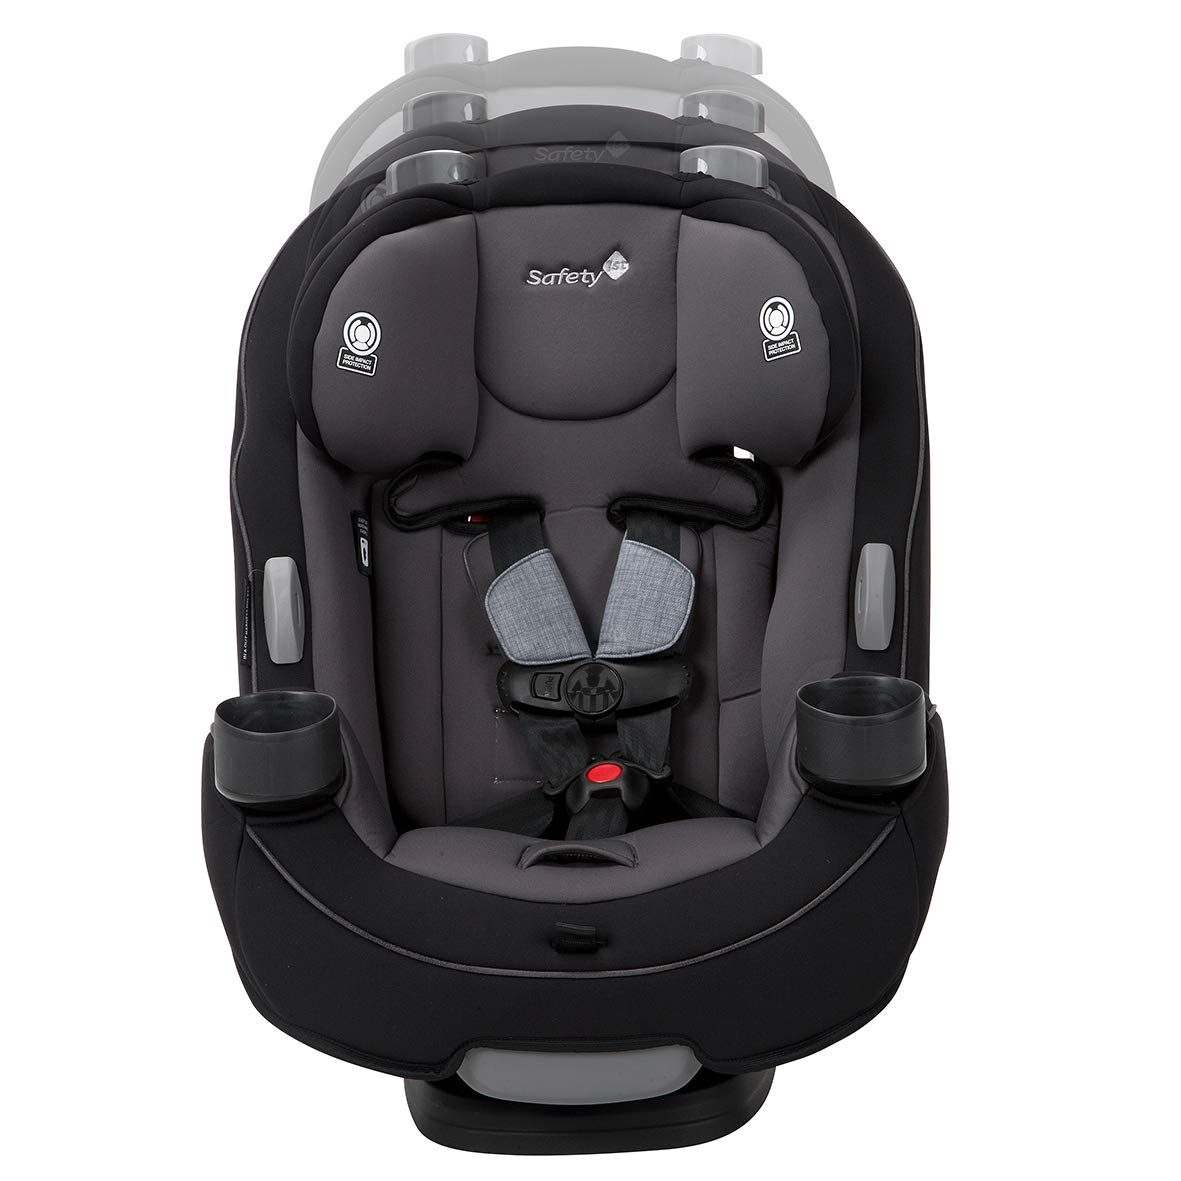 Safety 1st Grow and Go 3-in-1 Convertible Car Seat, Harvest Moon by Safety 1st (Image #1)